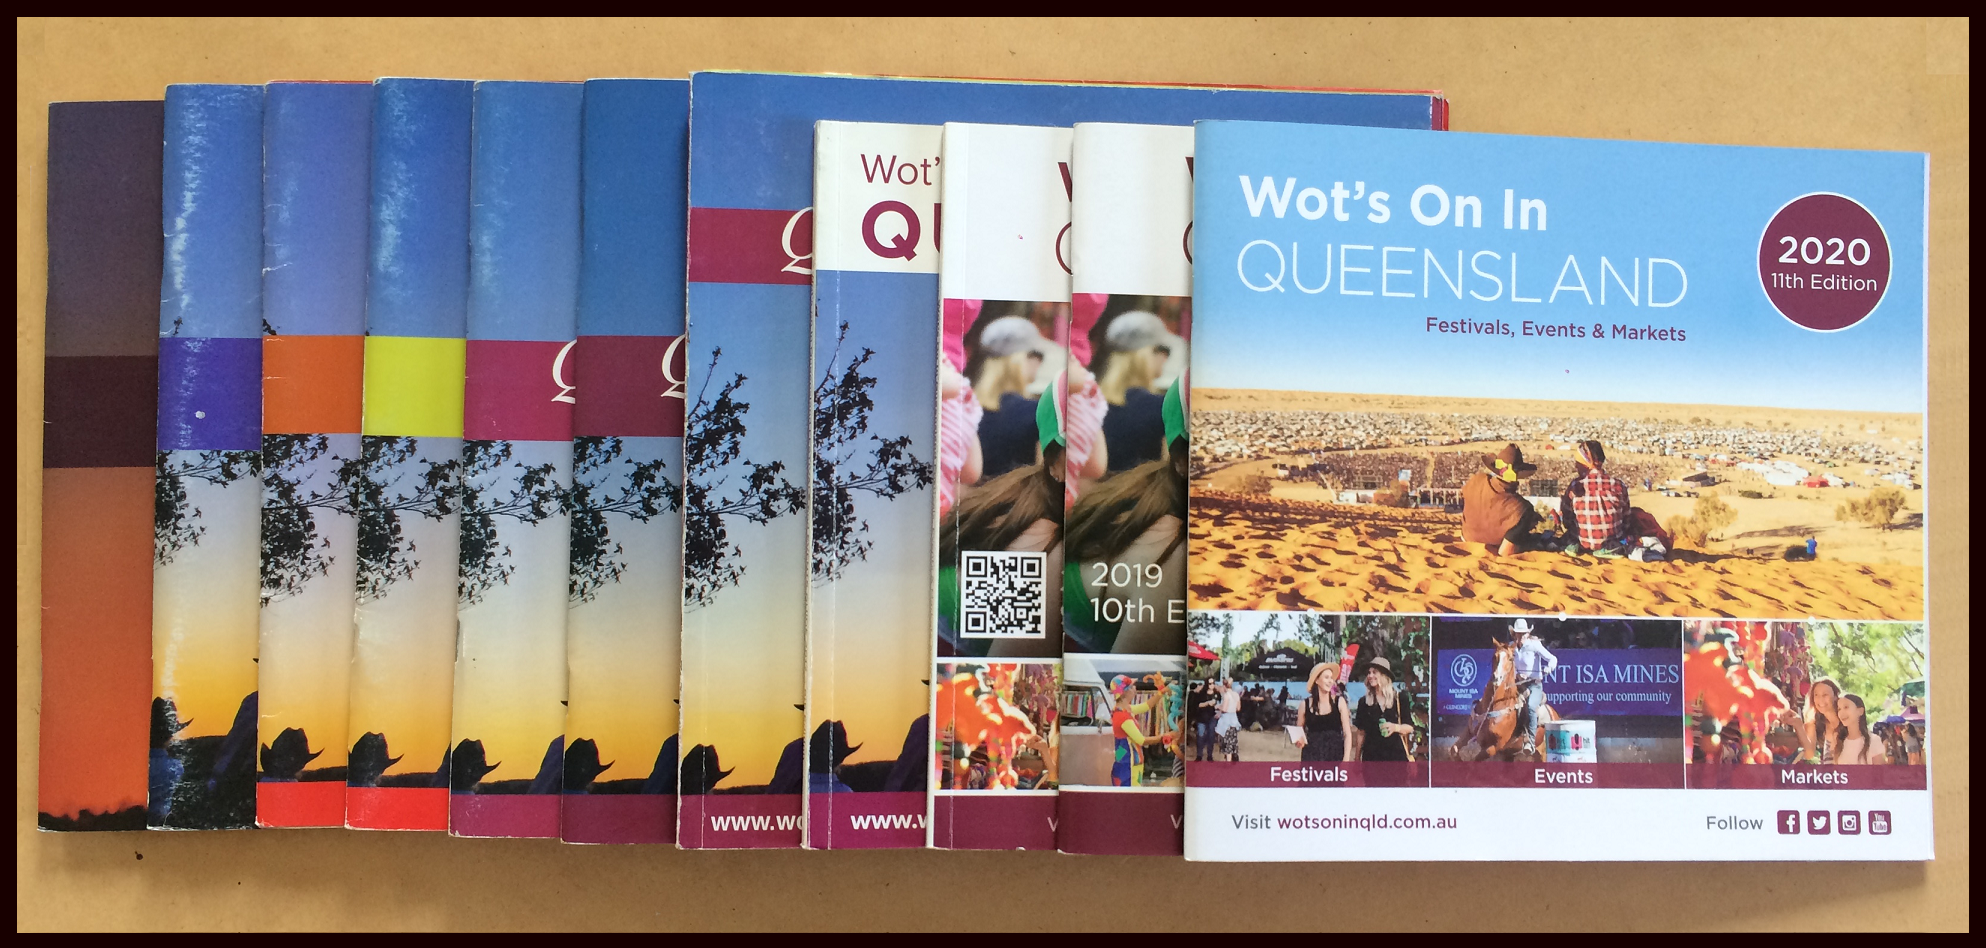 Wot's On In Queensland Festival and Events Guides books since 2009